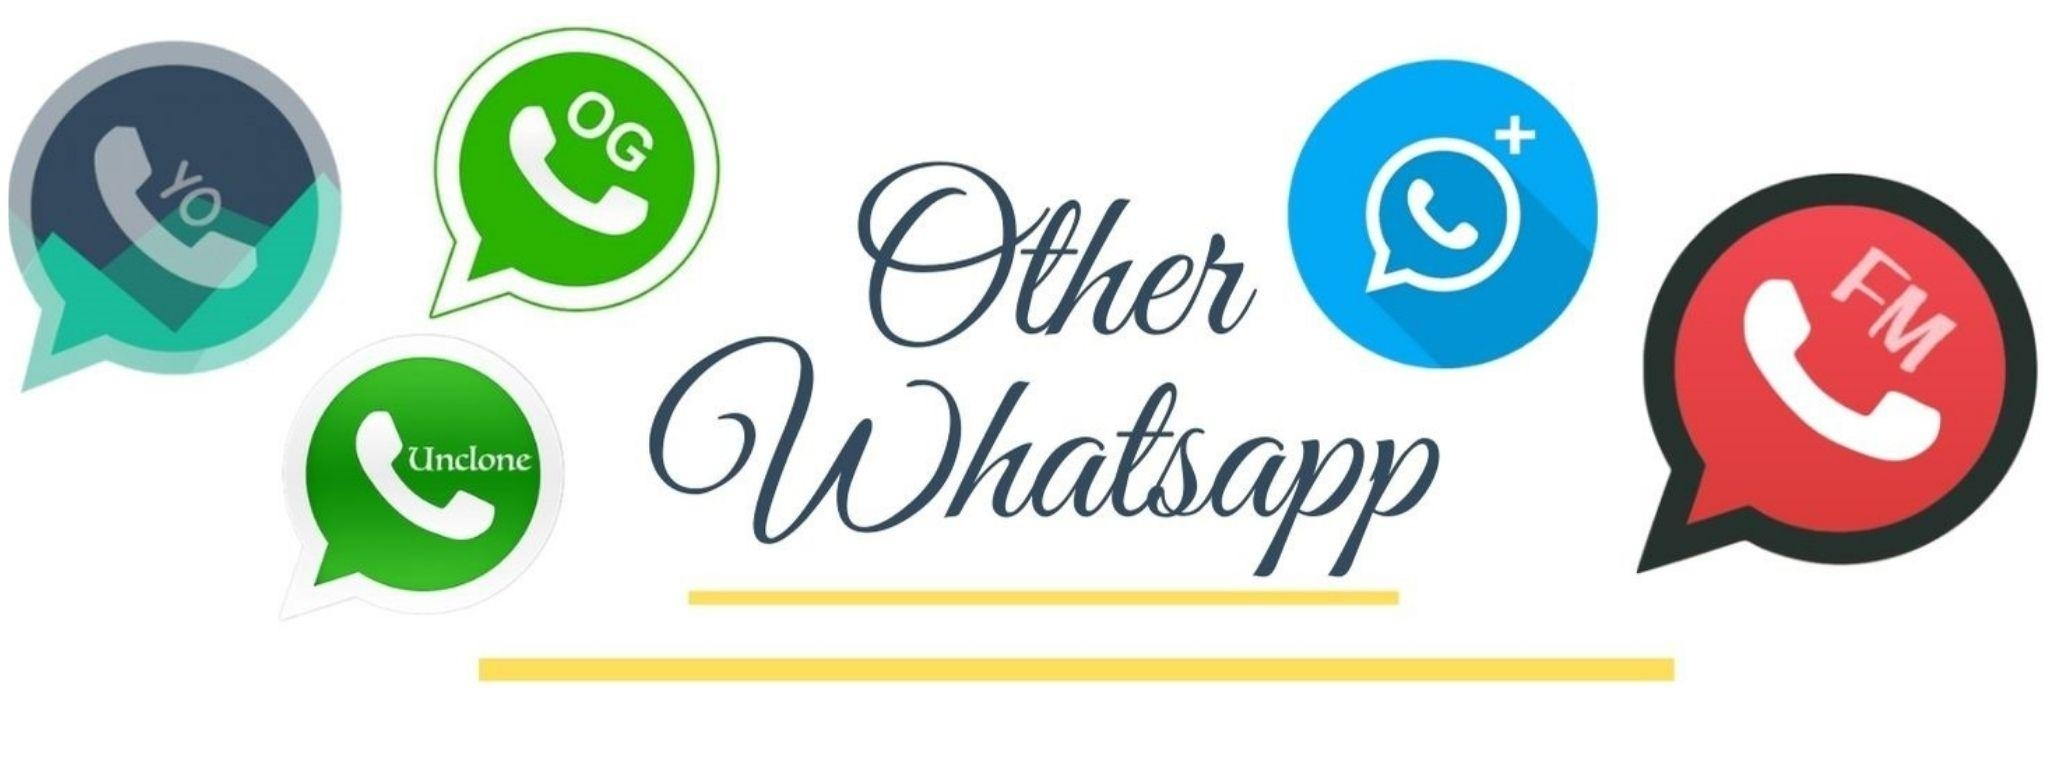 Otherwhatsapp (@otherwhatsapp) Cover Image